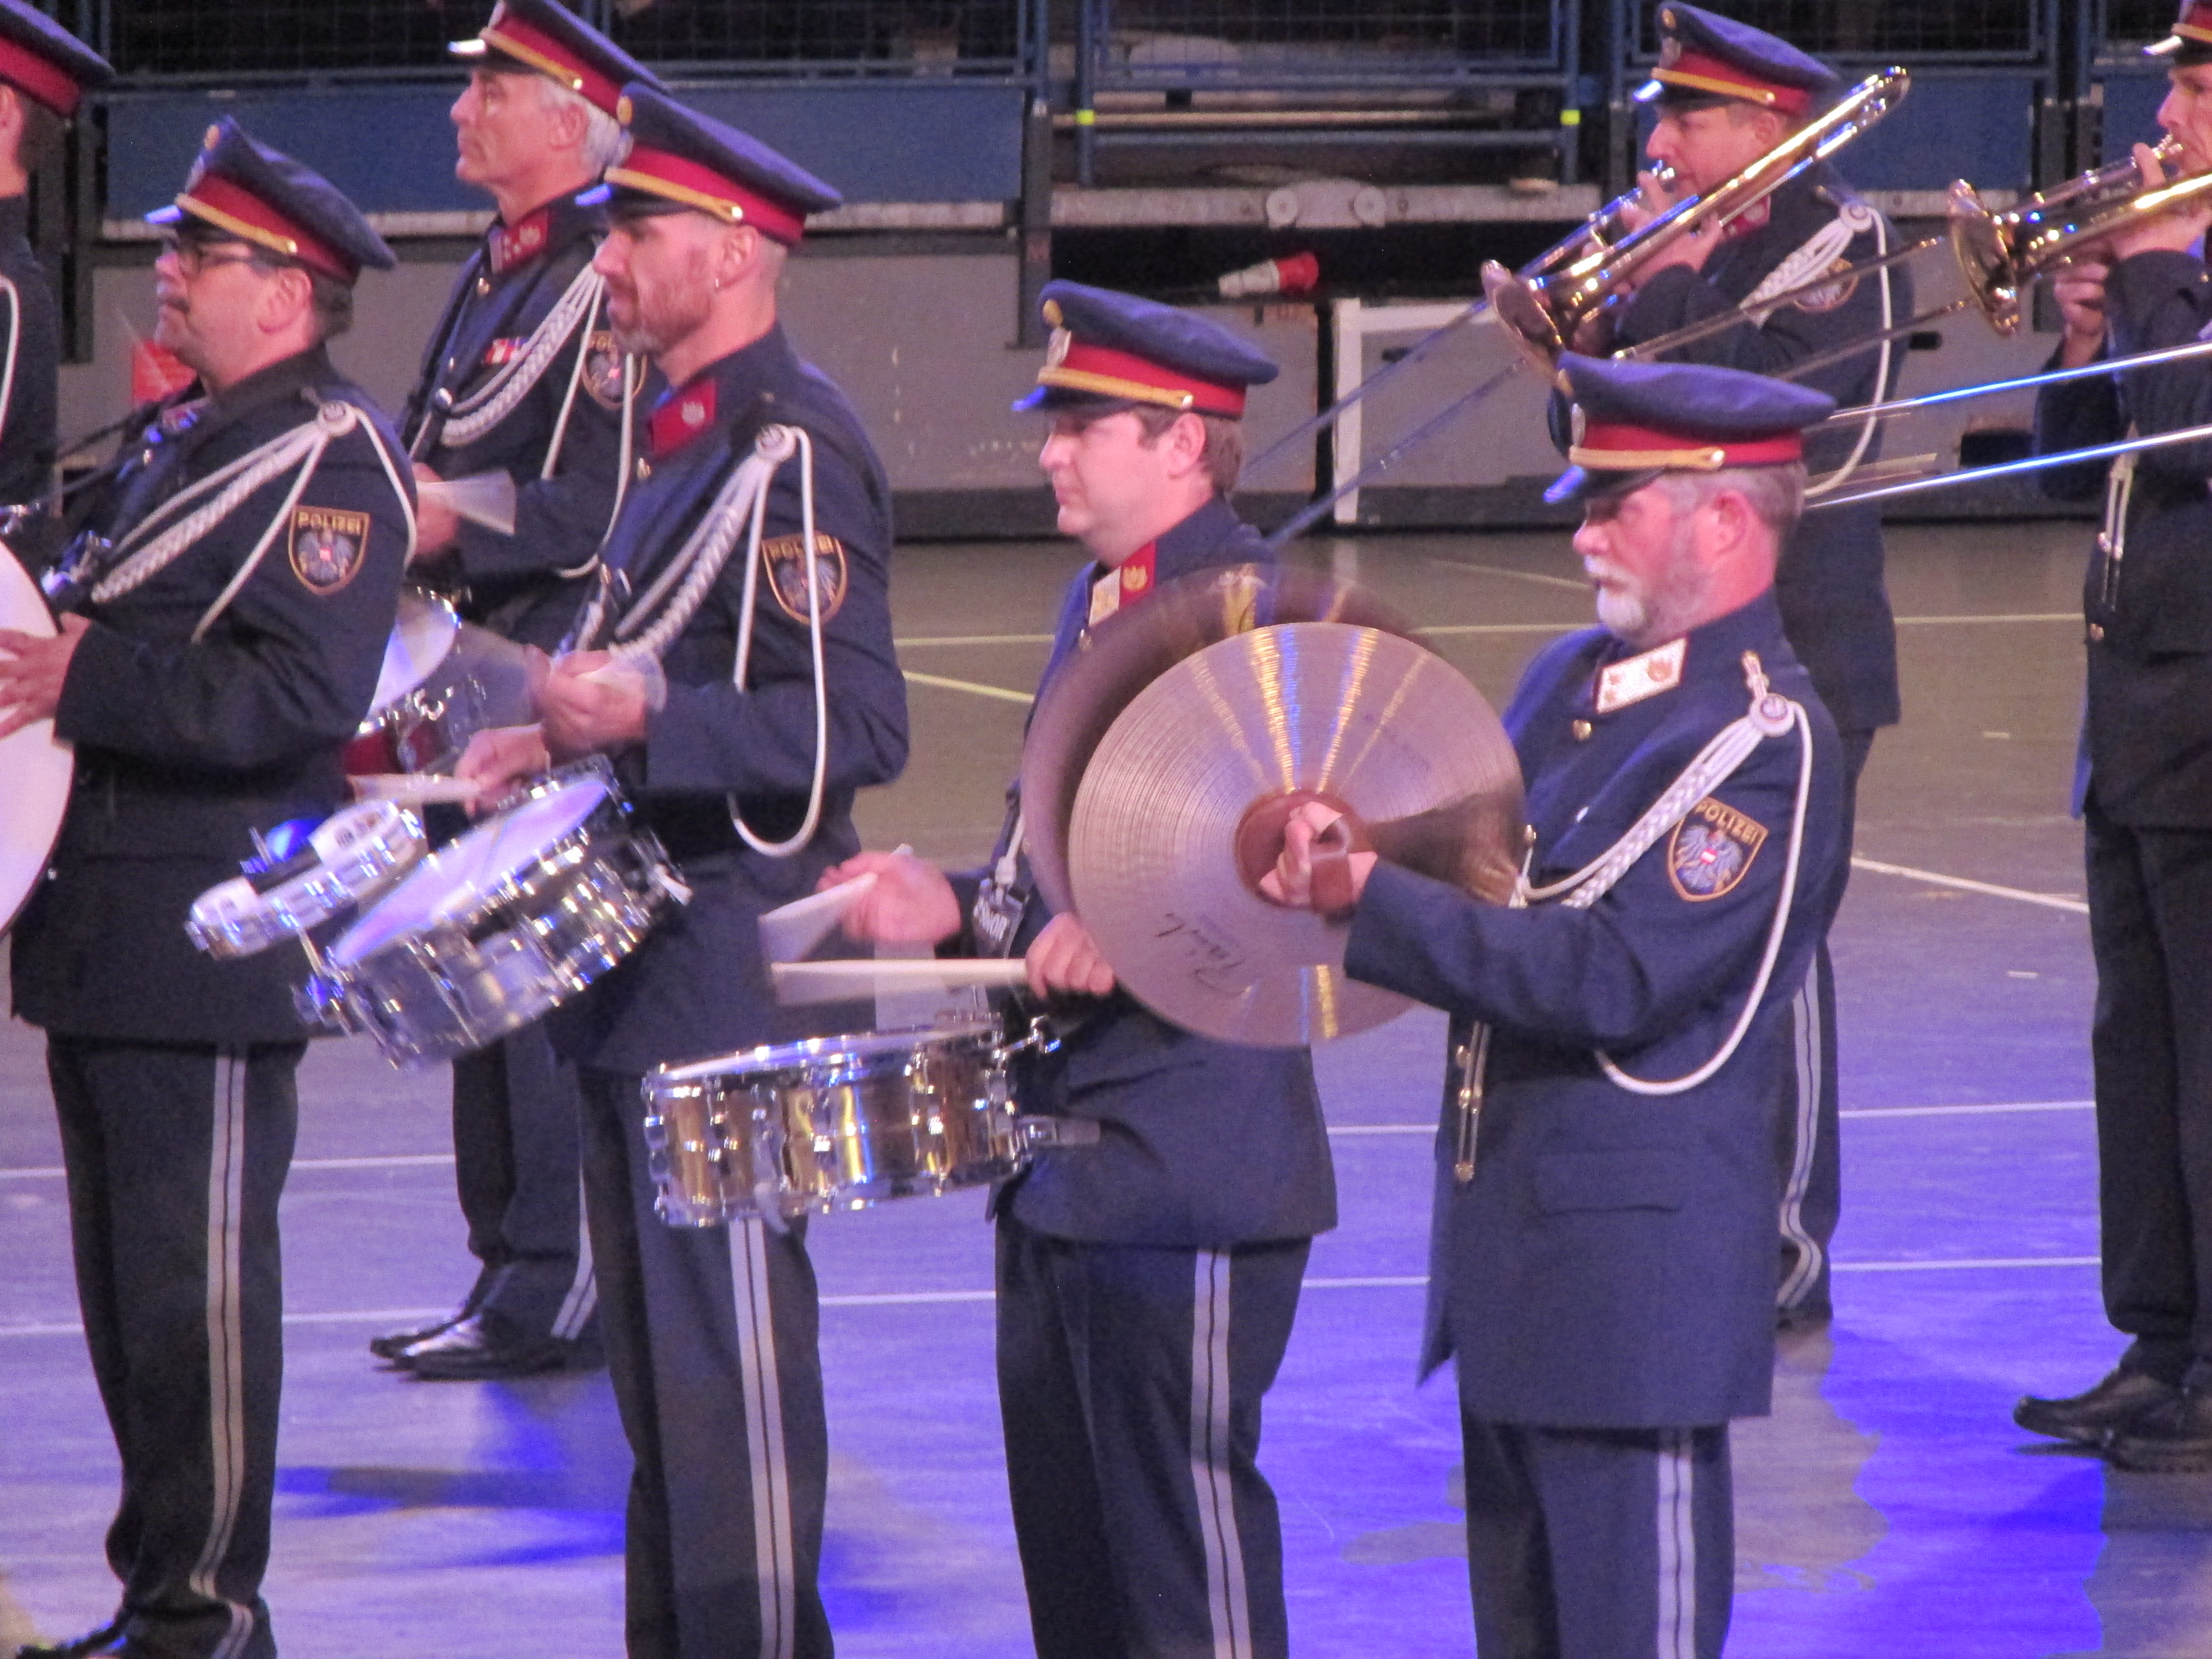 The Tirol Police Band, Austria